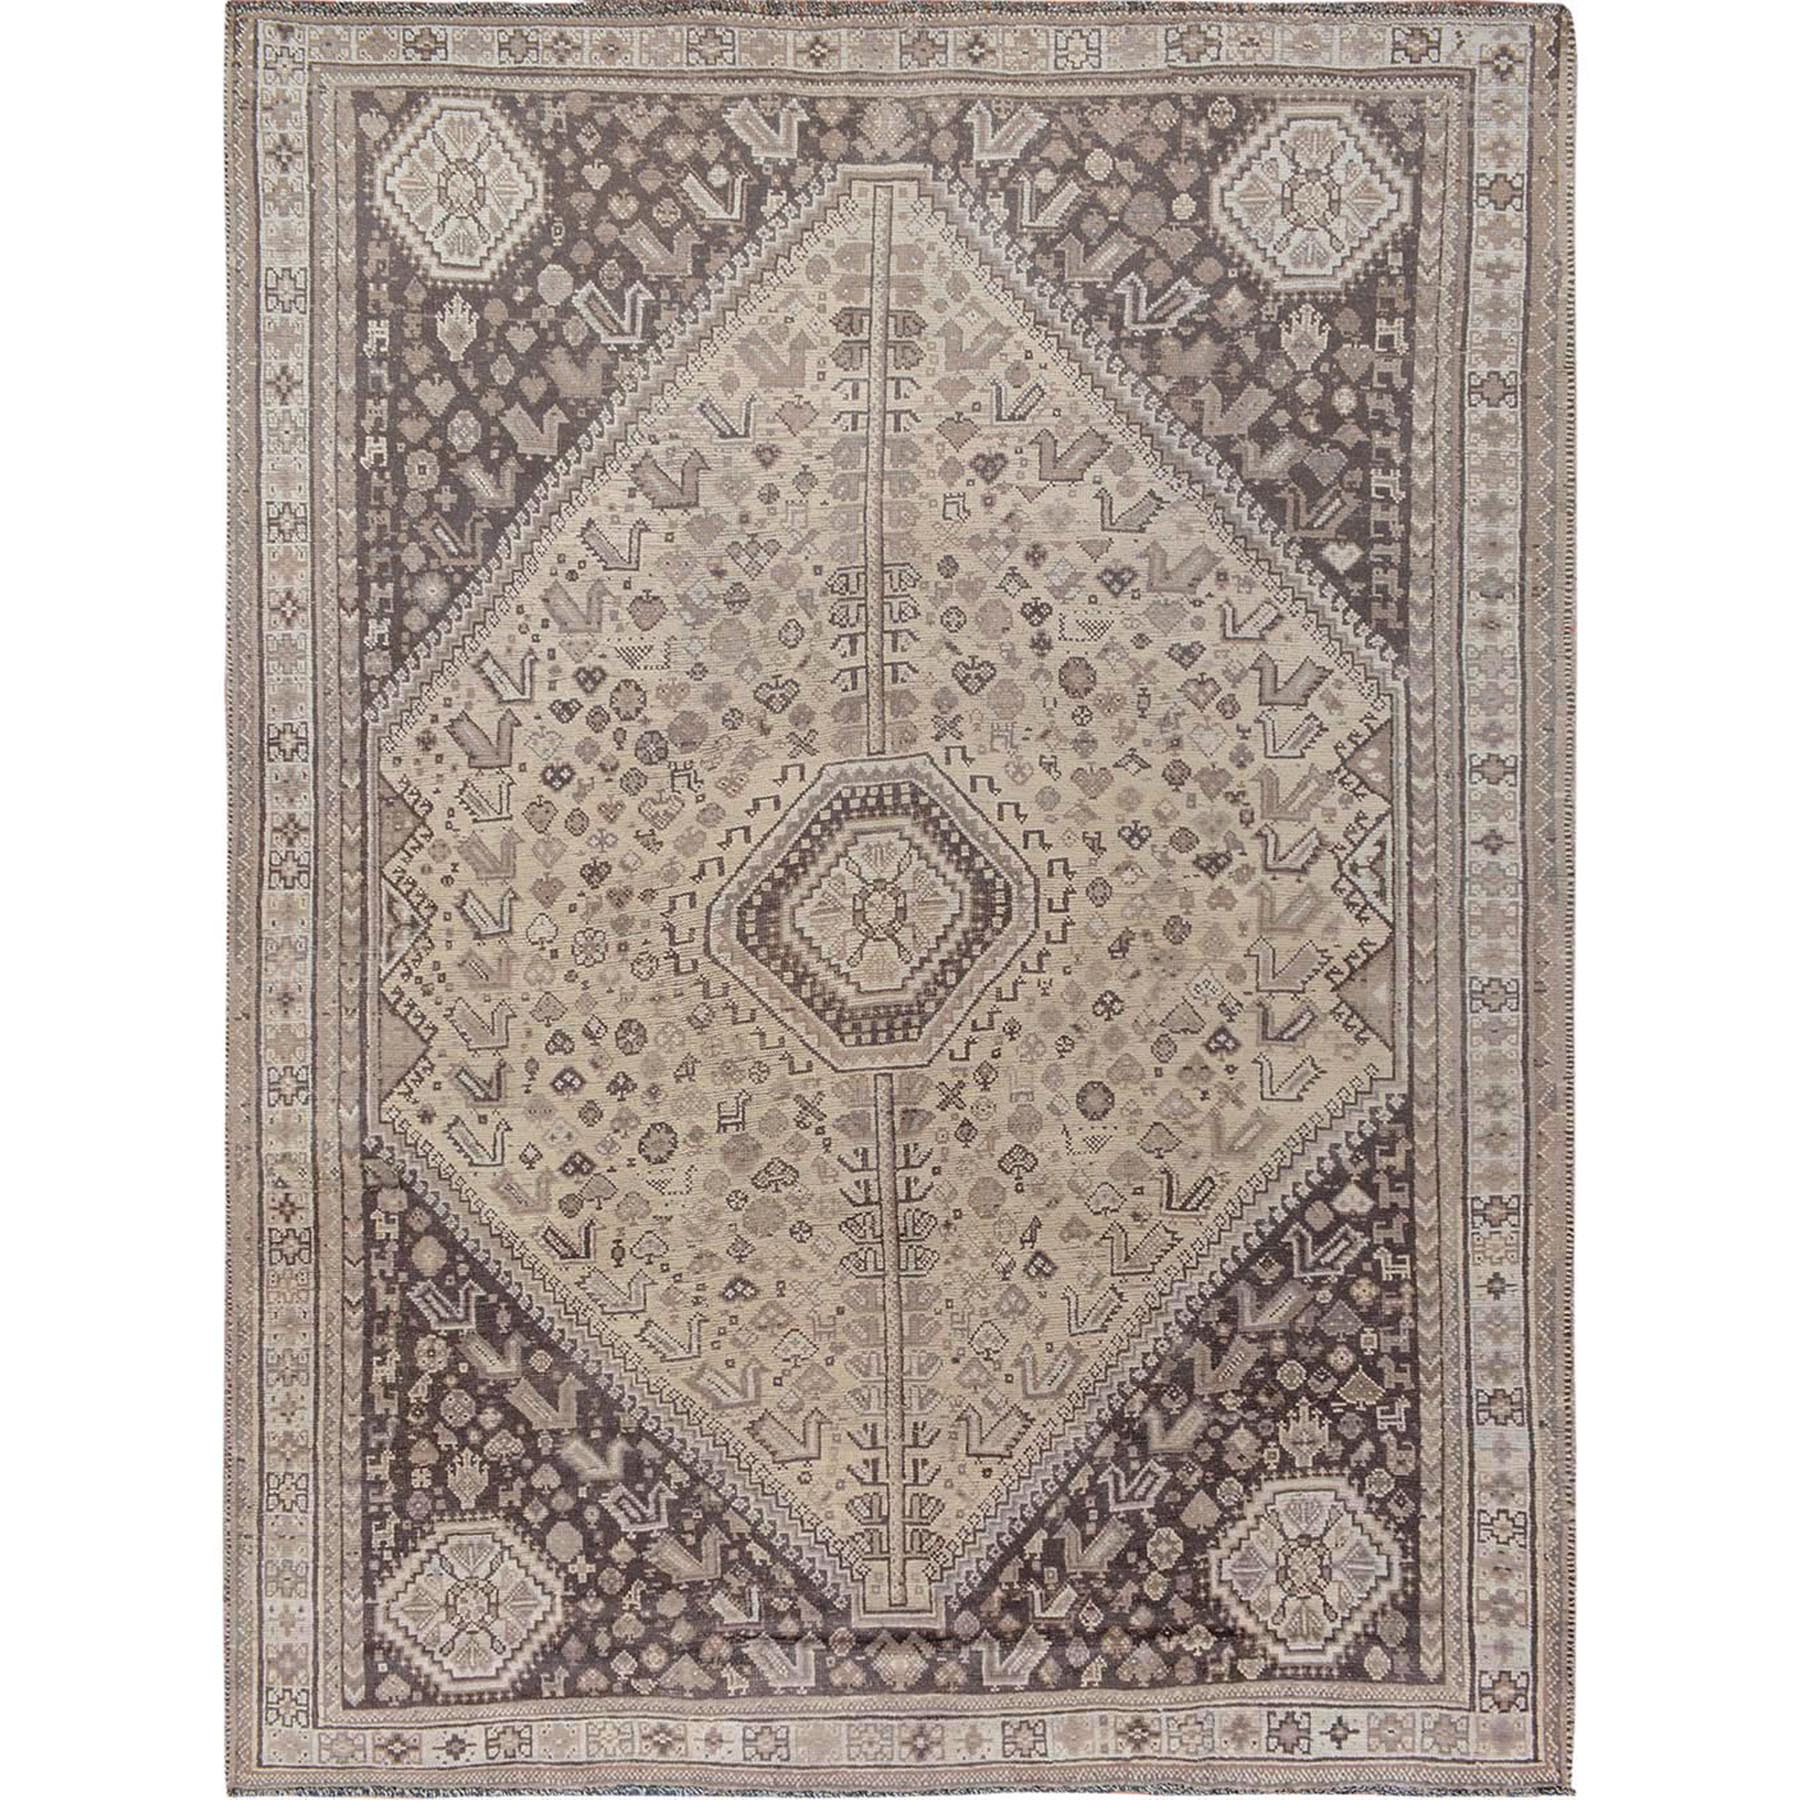 "7'2""x9'5"" Natural Colors Vintage And Worn Down Persian Shiraz Pure Wool Hand Knotted Oriental Rug"